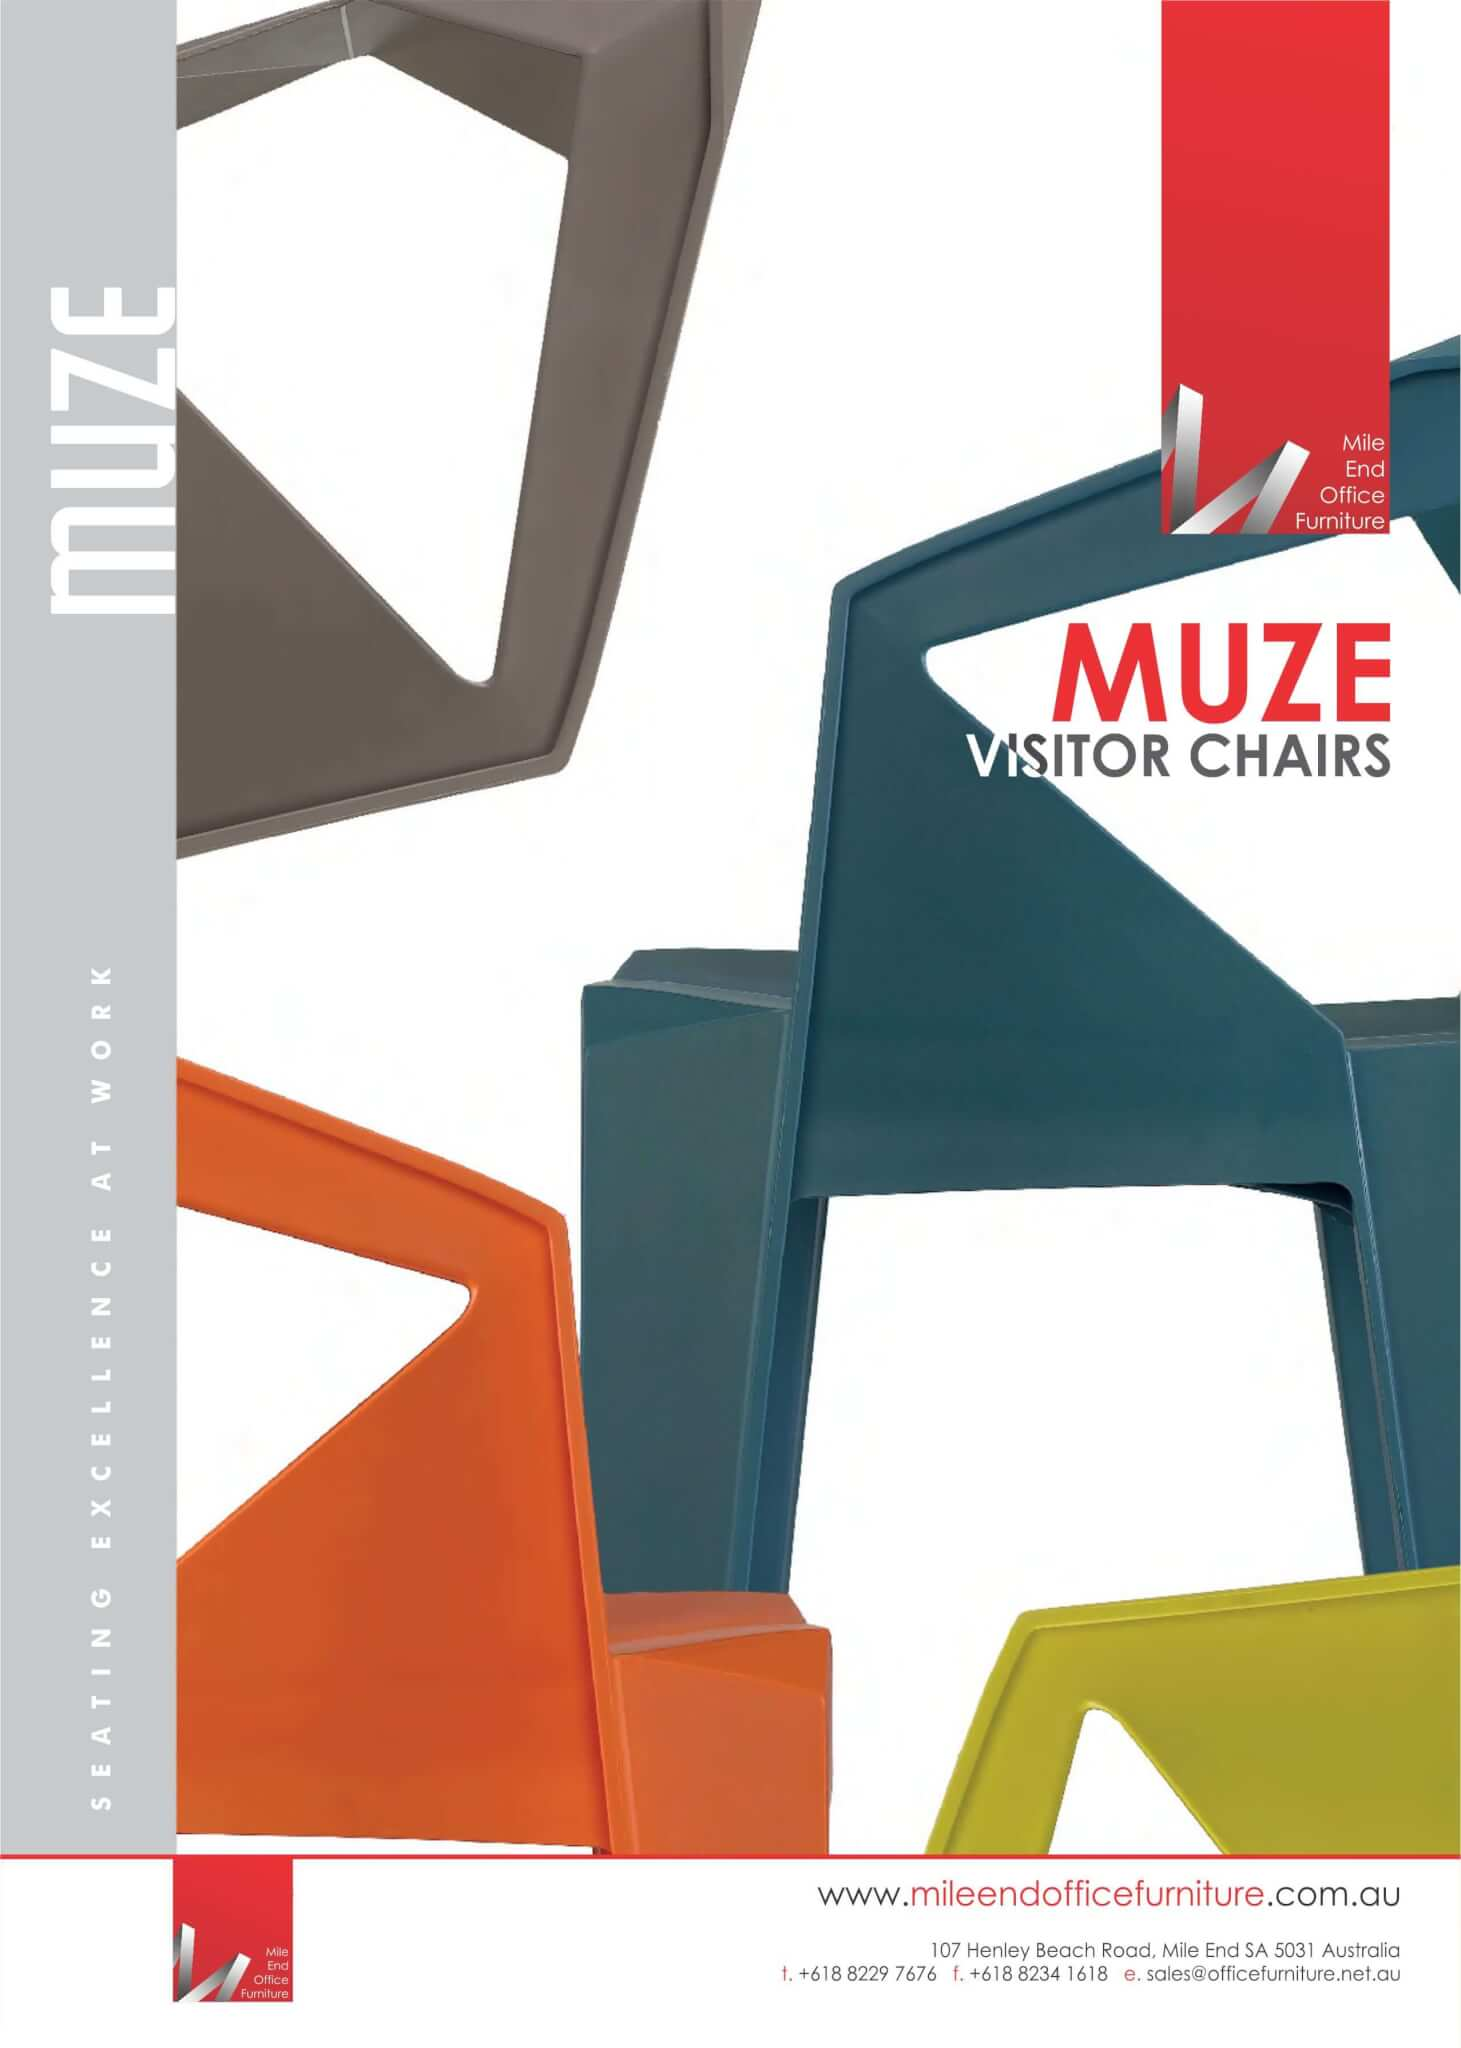 Muze Visitor Chairs